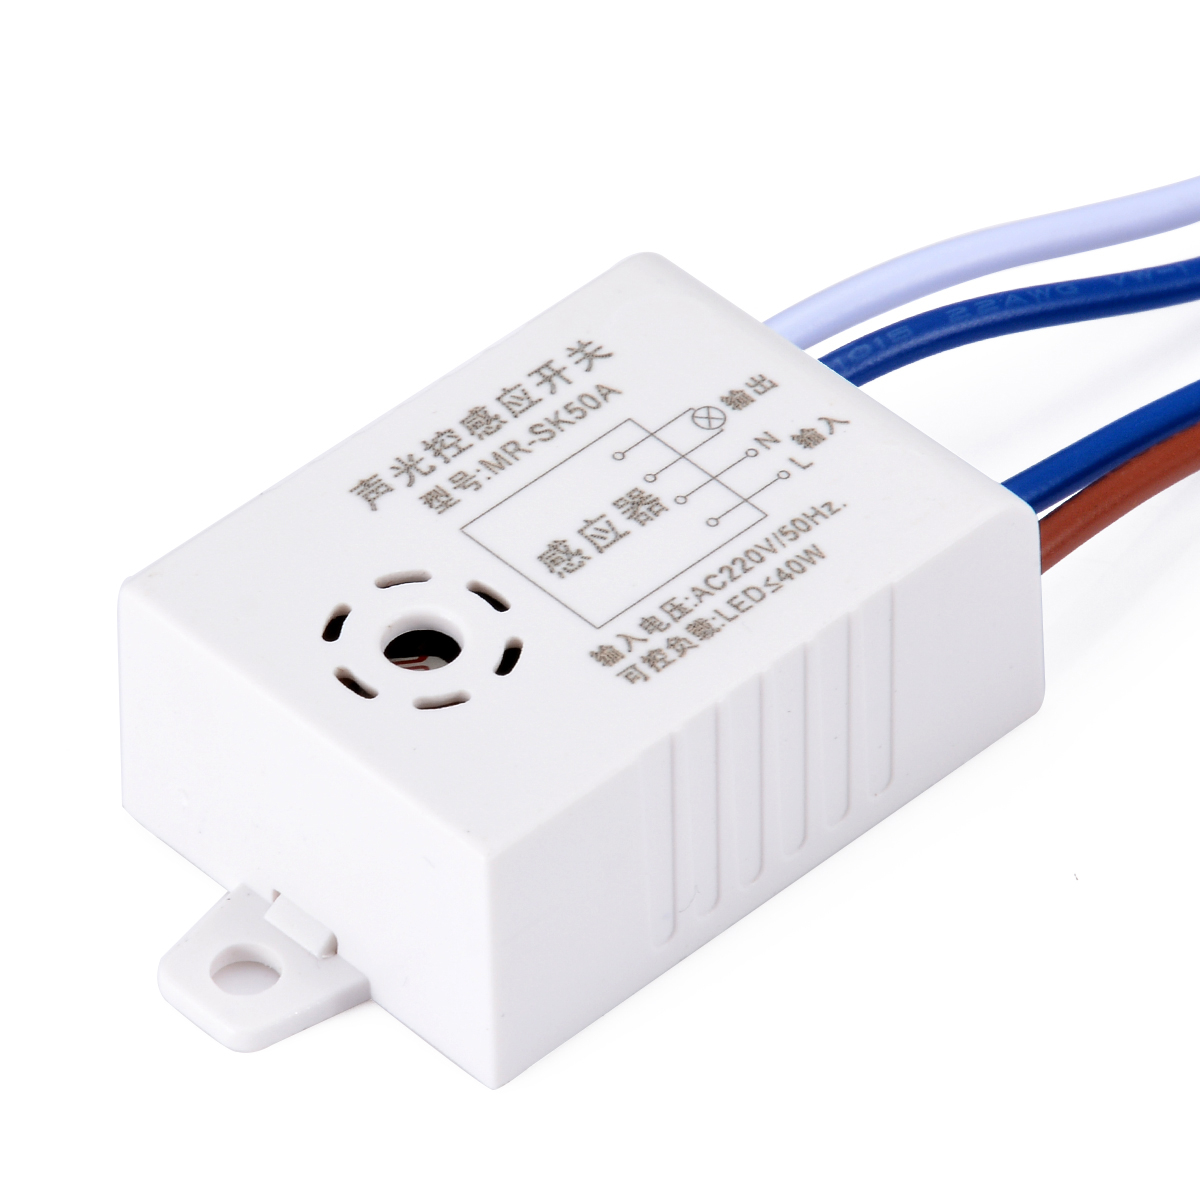 1pc-automatic-on-off-street-light-switch-photo-control-ac-220v-with-sound-voice-sensor